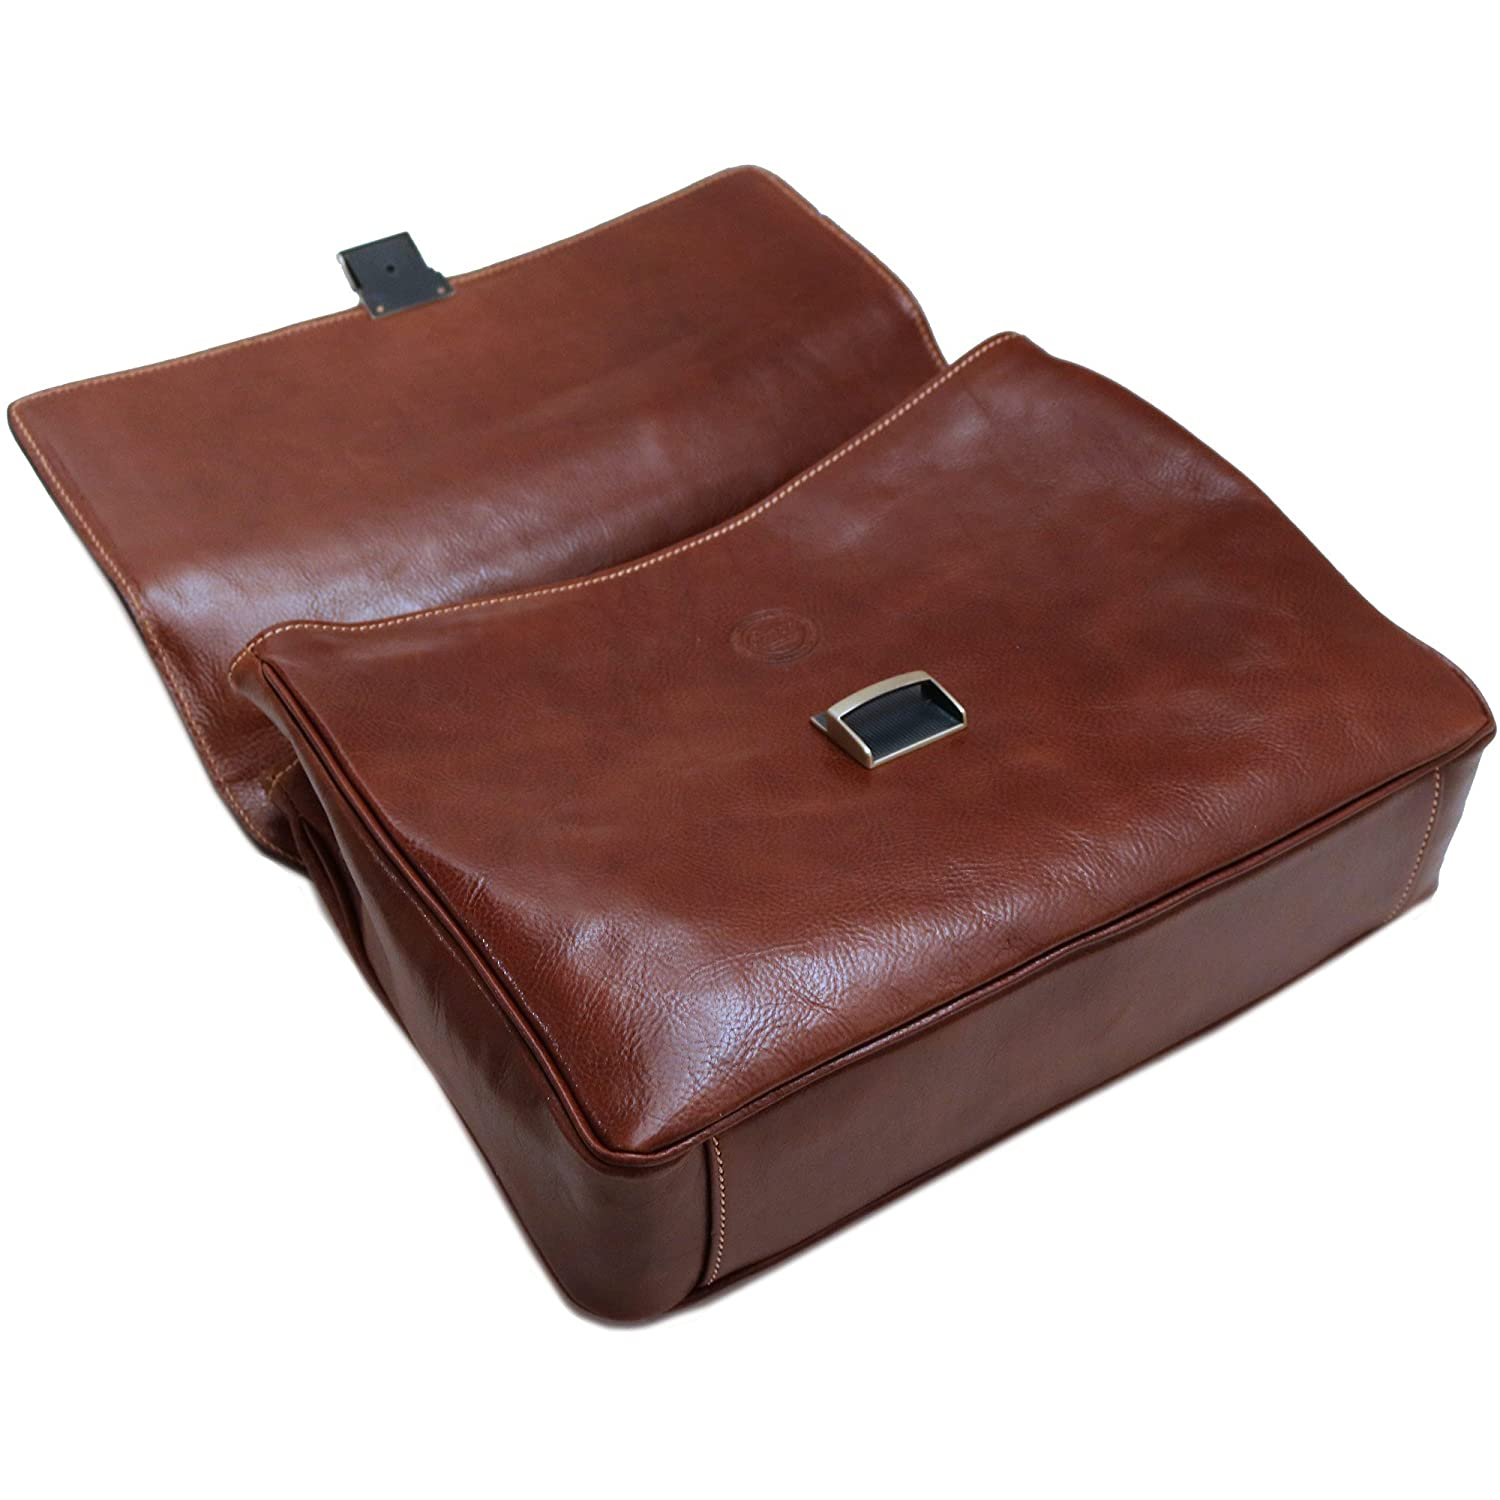 Cenzo Leather Laptop Briefcase Messenger Bag in Brown